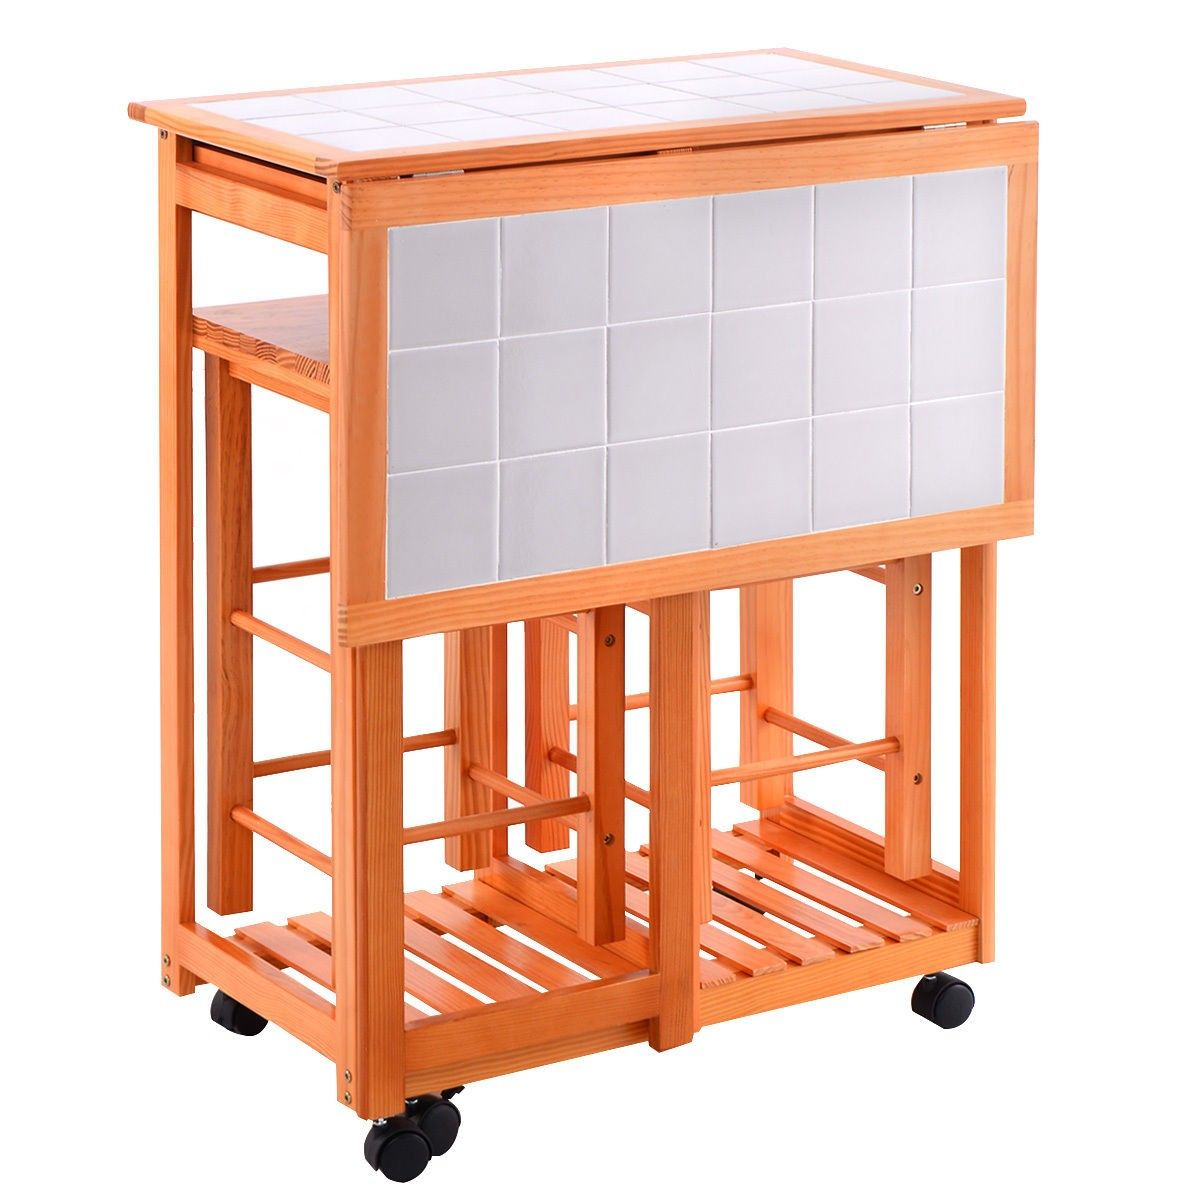 rolling kitchen chairs Rolling Kitchen Island Trolley Cart Drop Leaf Table w 2 Stools Home Breakfast Carts